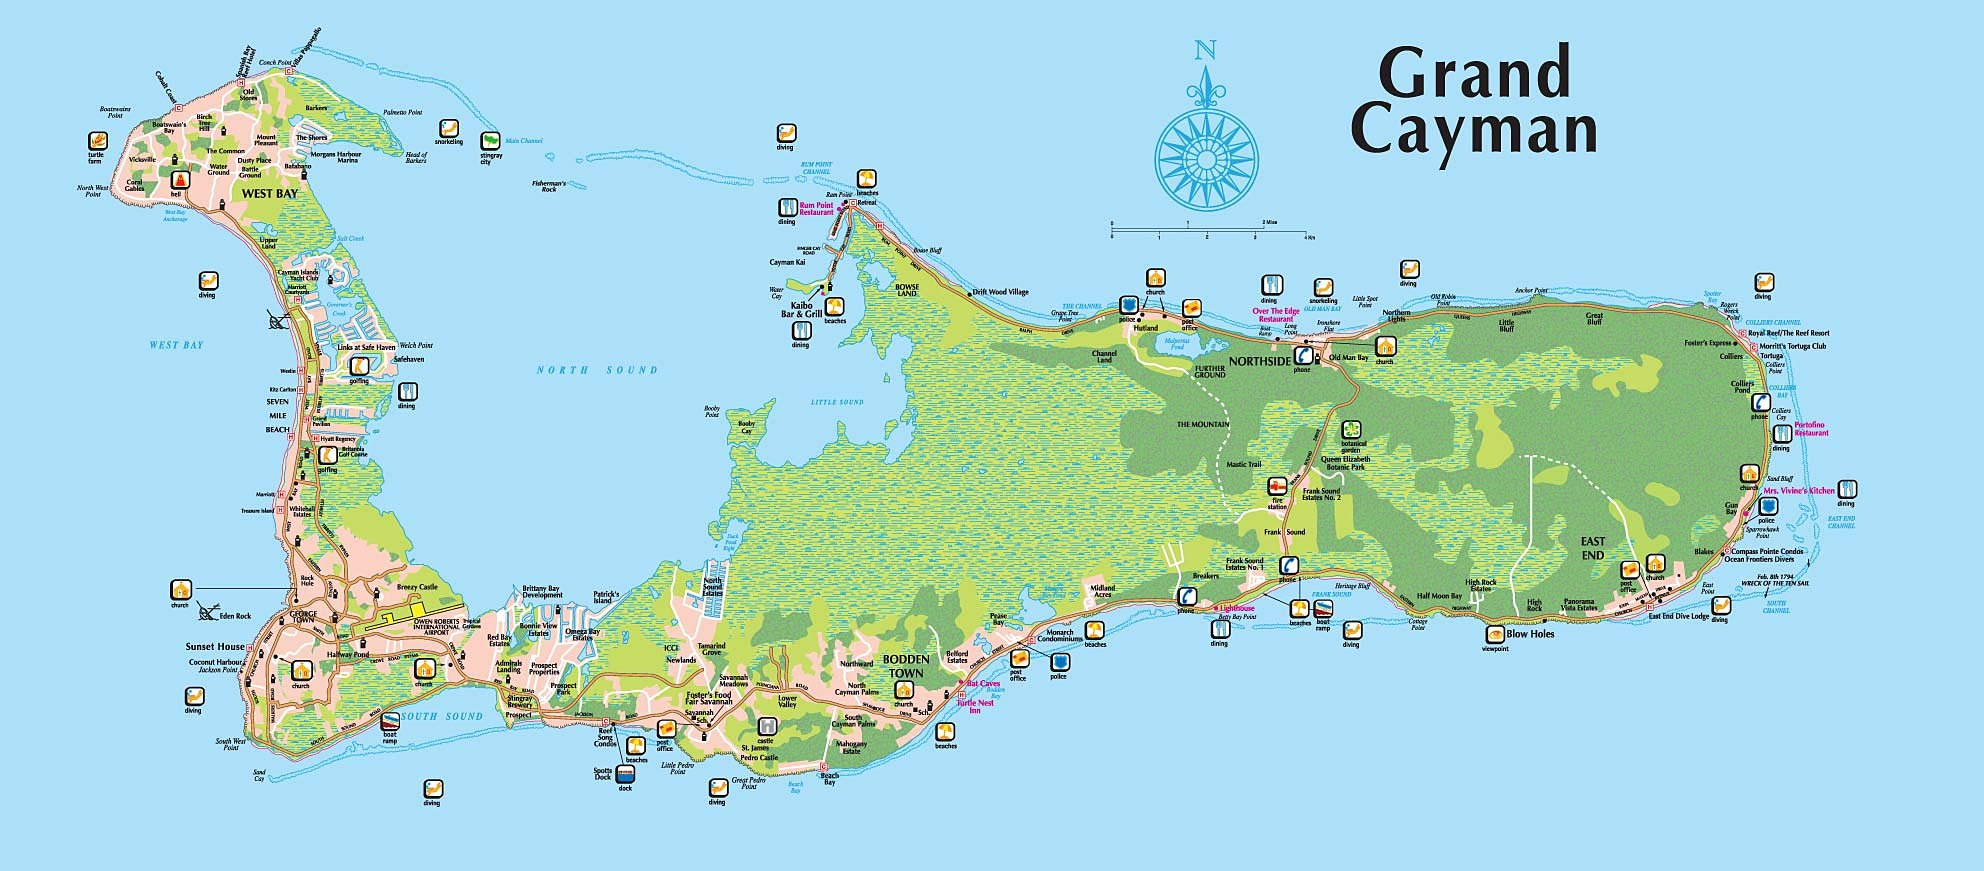 Grand Cayman Map Queen Elizabeth II Royal Botanic Park – Our Location Grand Cayman Map